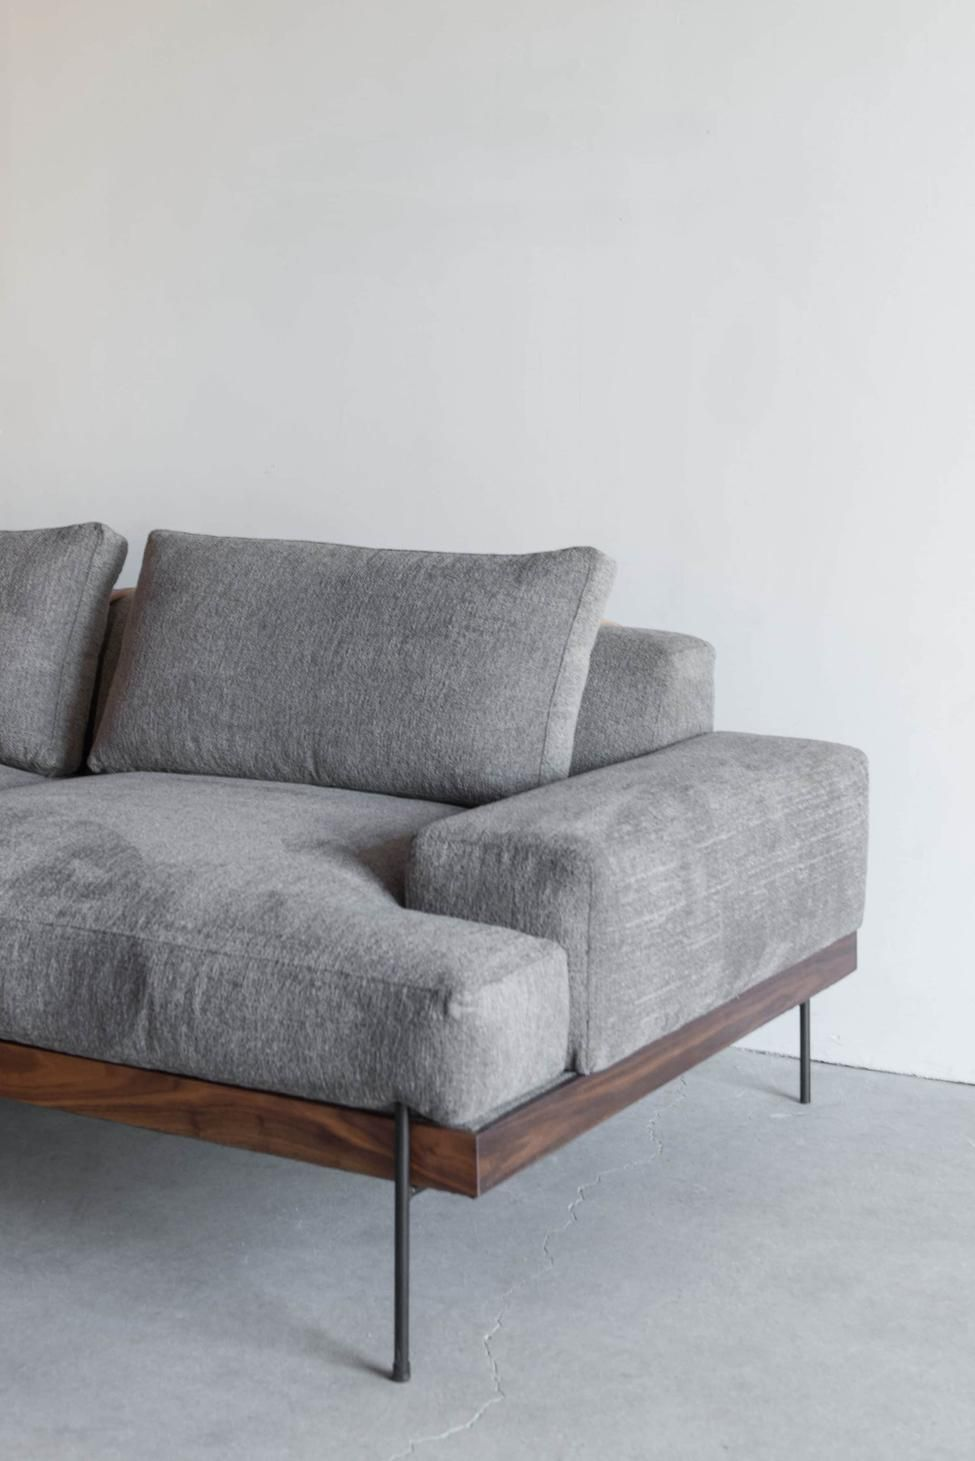 Rivera Sofa Couch Furniture Homemade Sofa Sofa Design